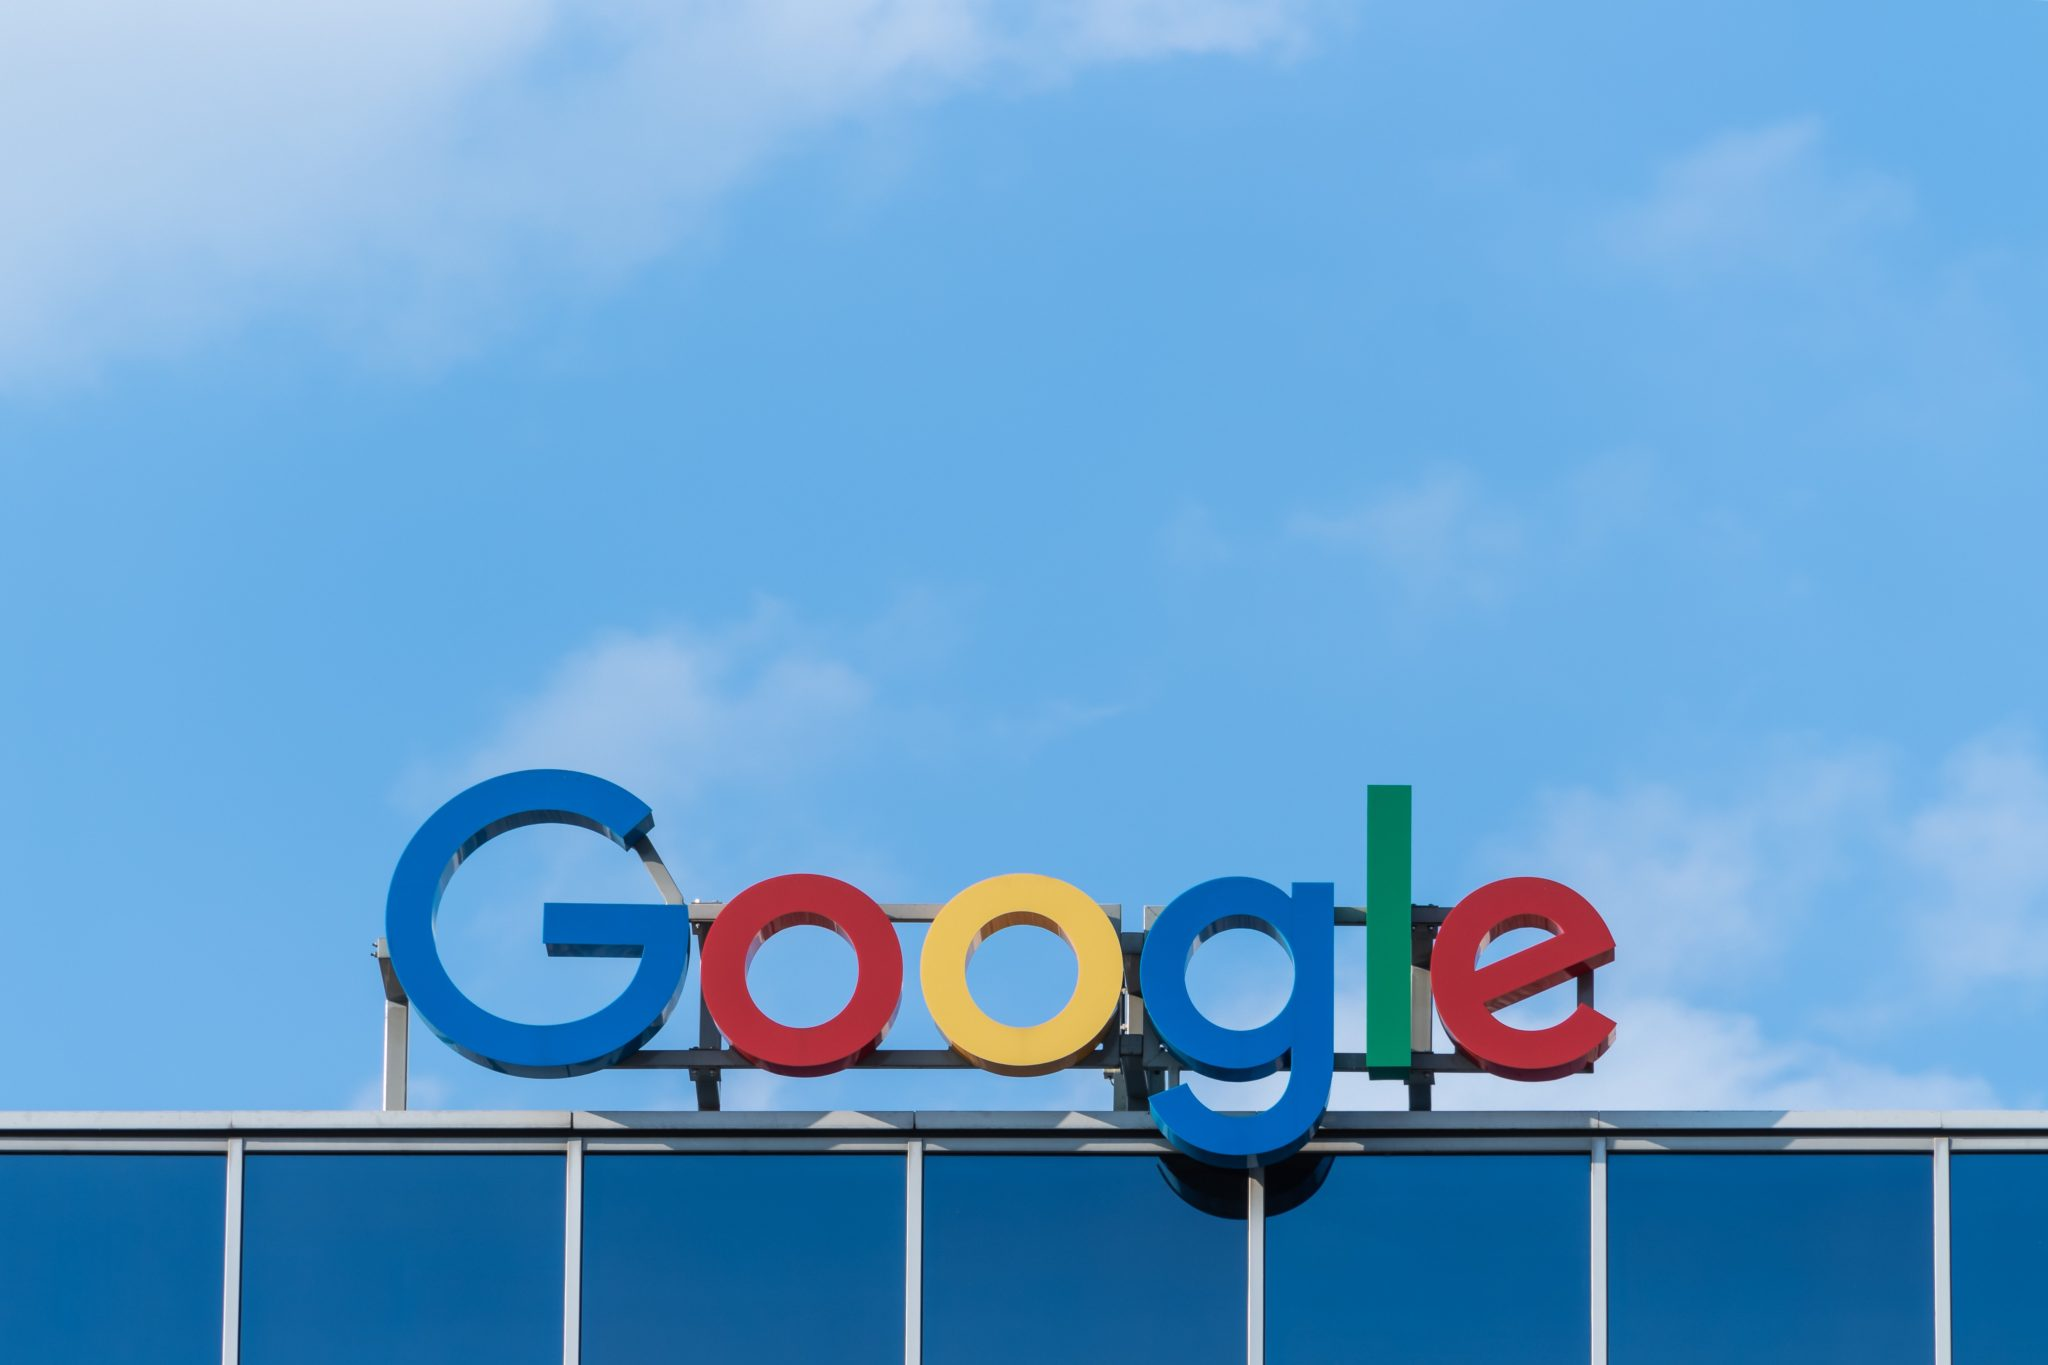 Eventify to receive funding from Google